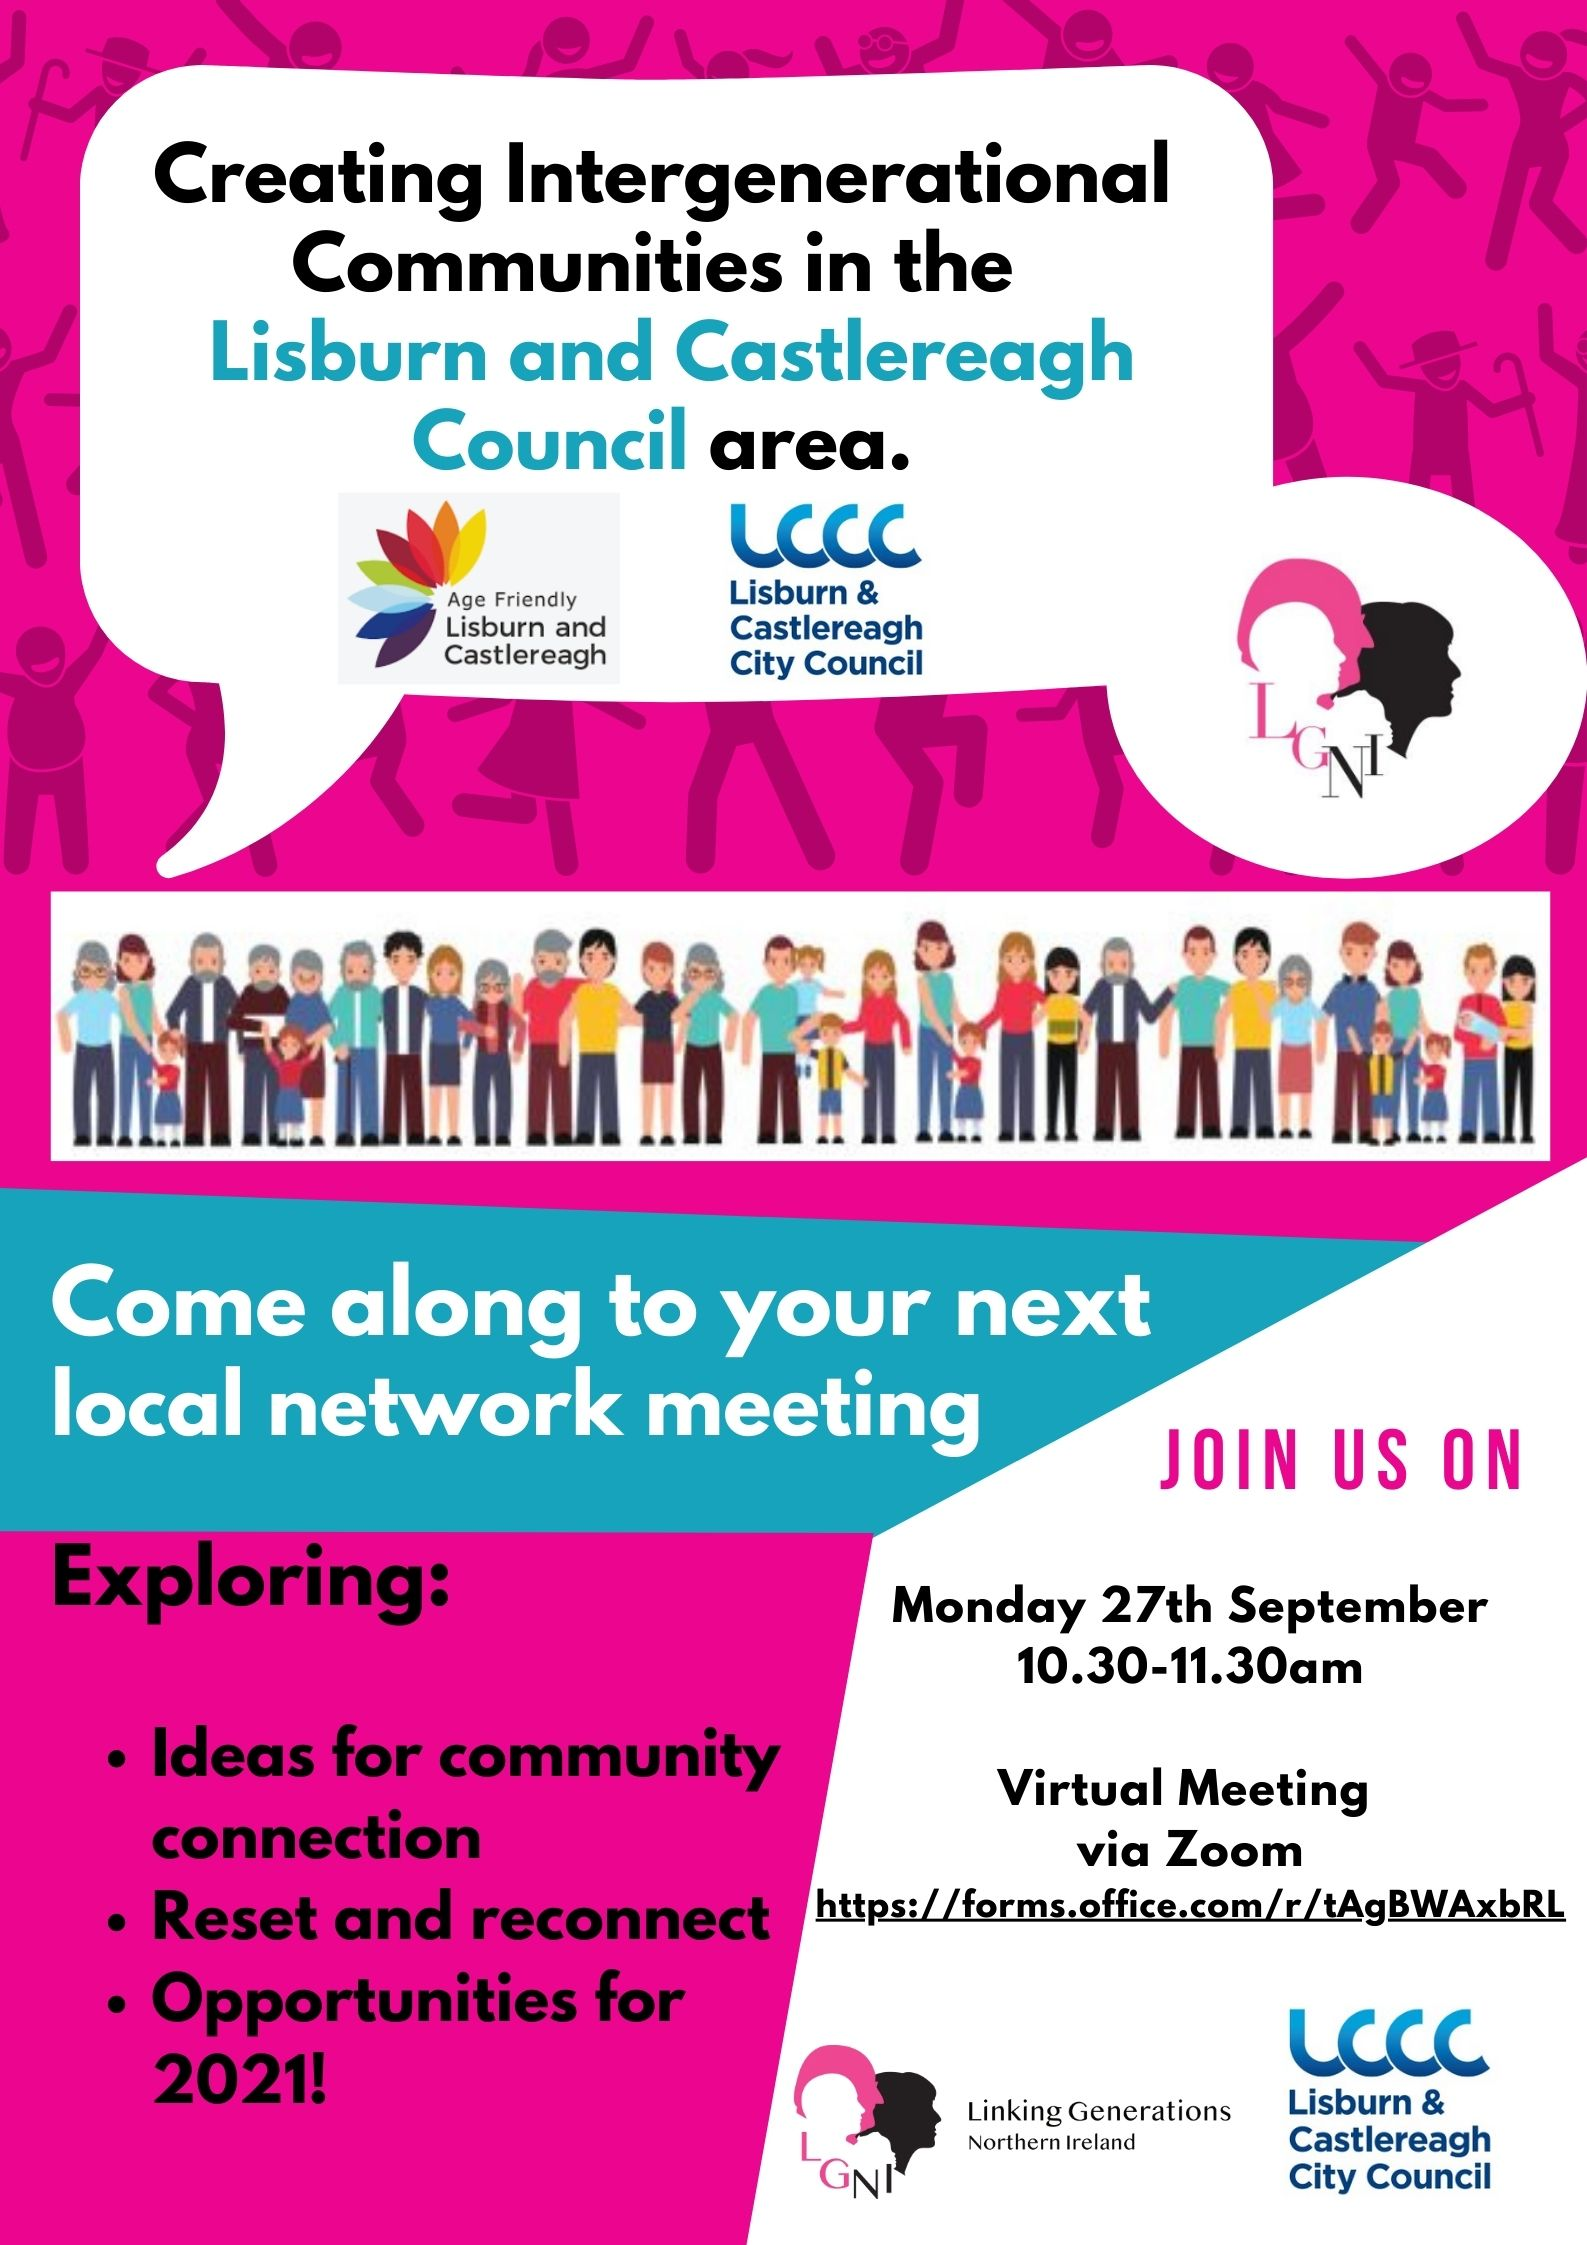 LGNI Lisburn and Castlereagh Network Meeting